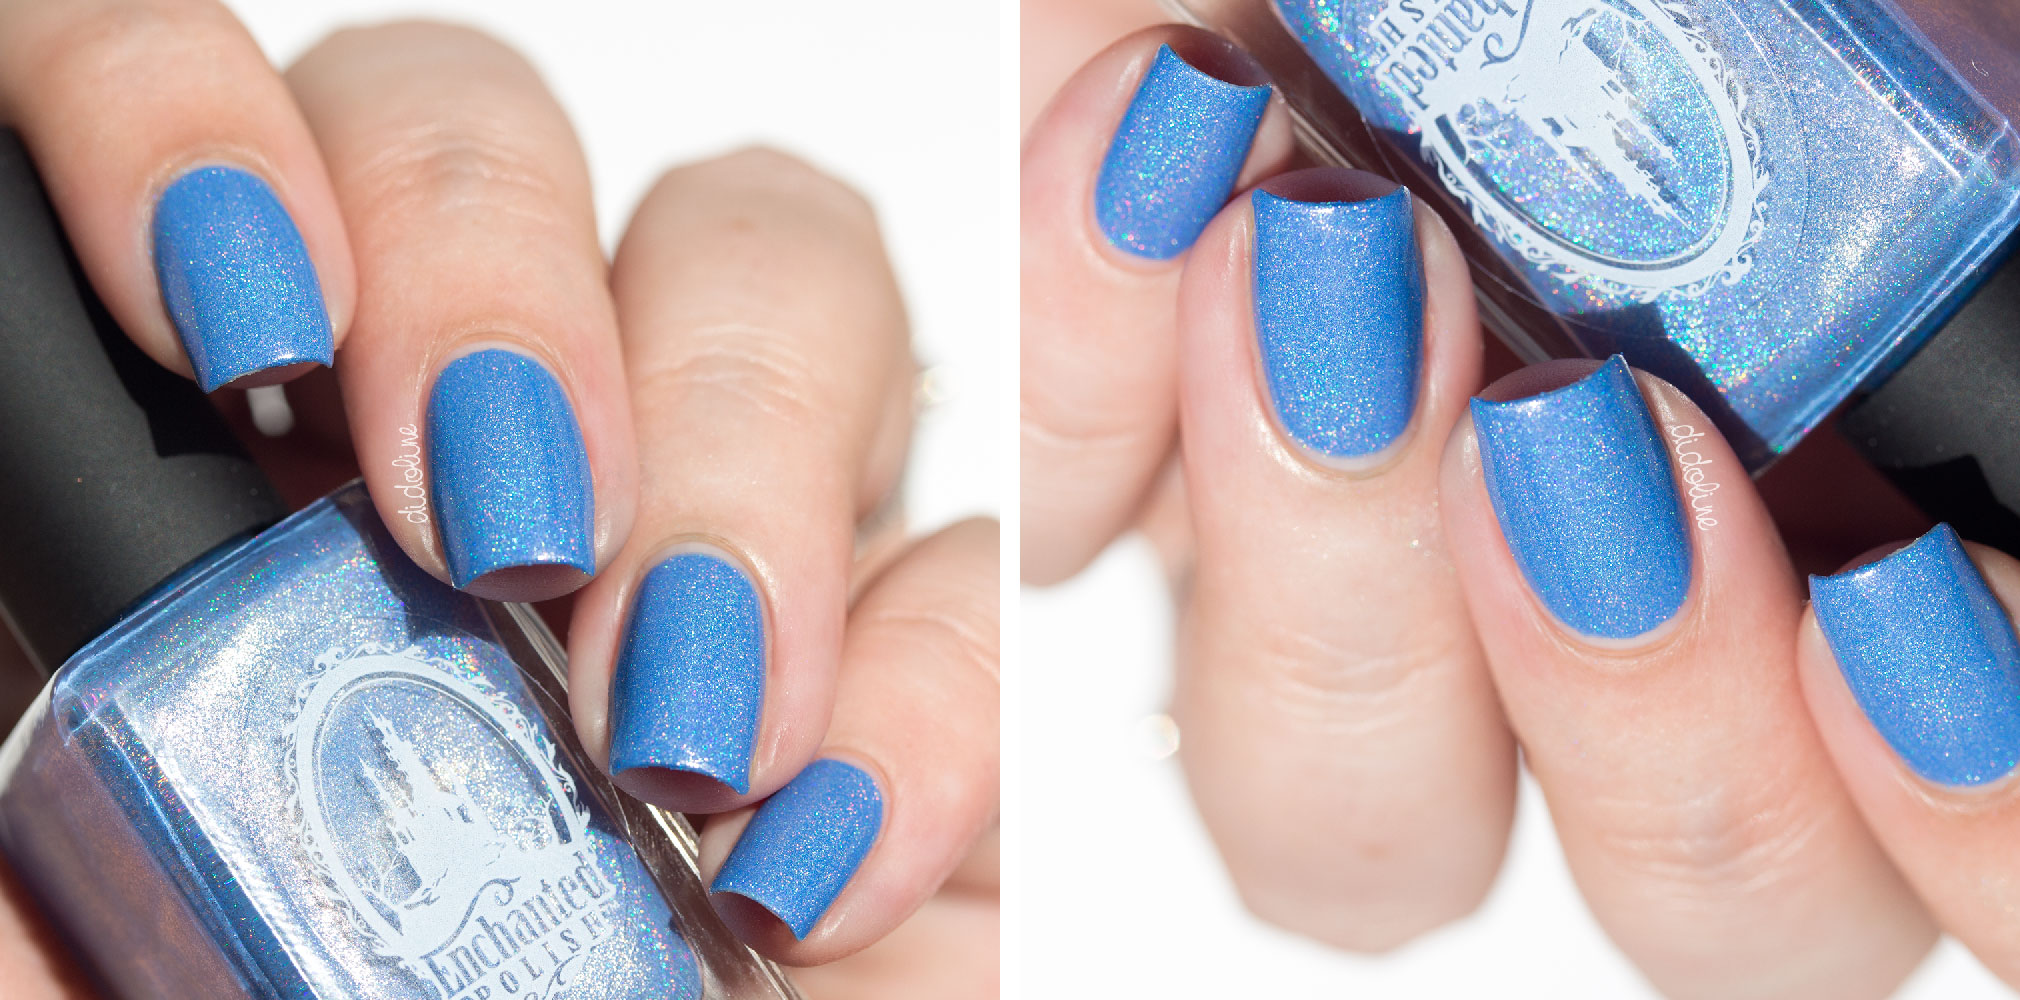 Enchanted Polish - Reign Beau - Swatch